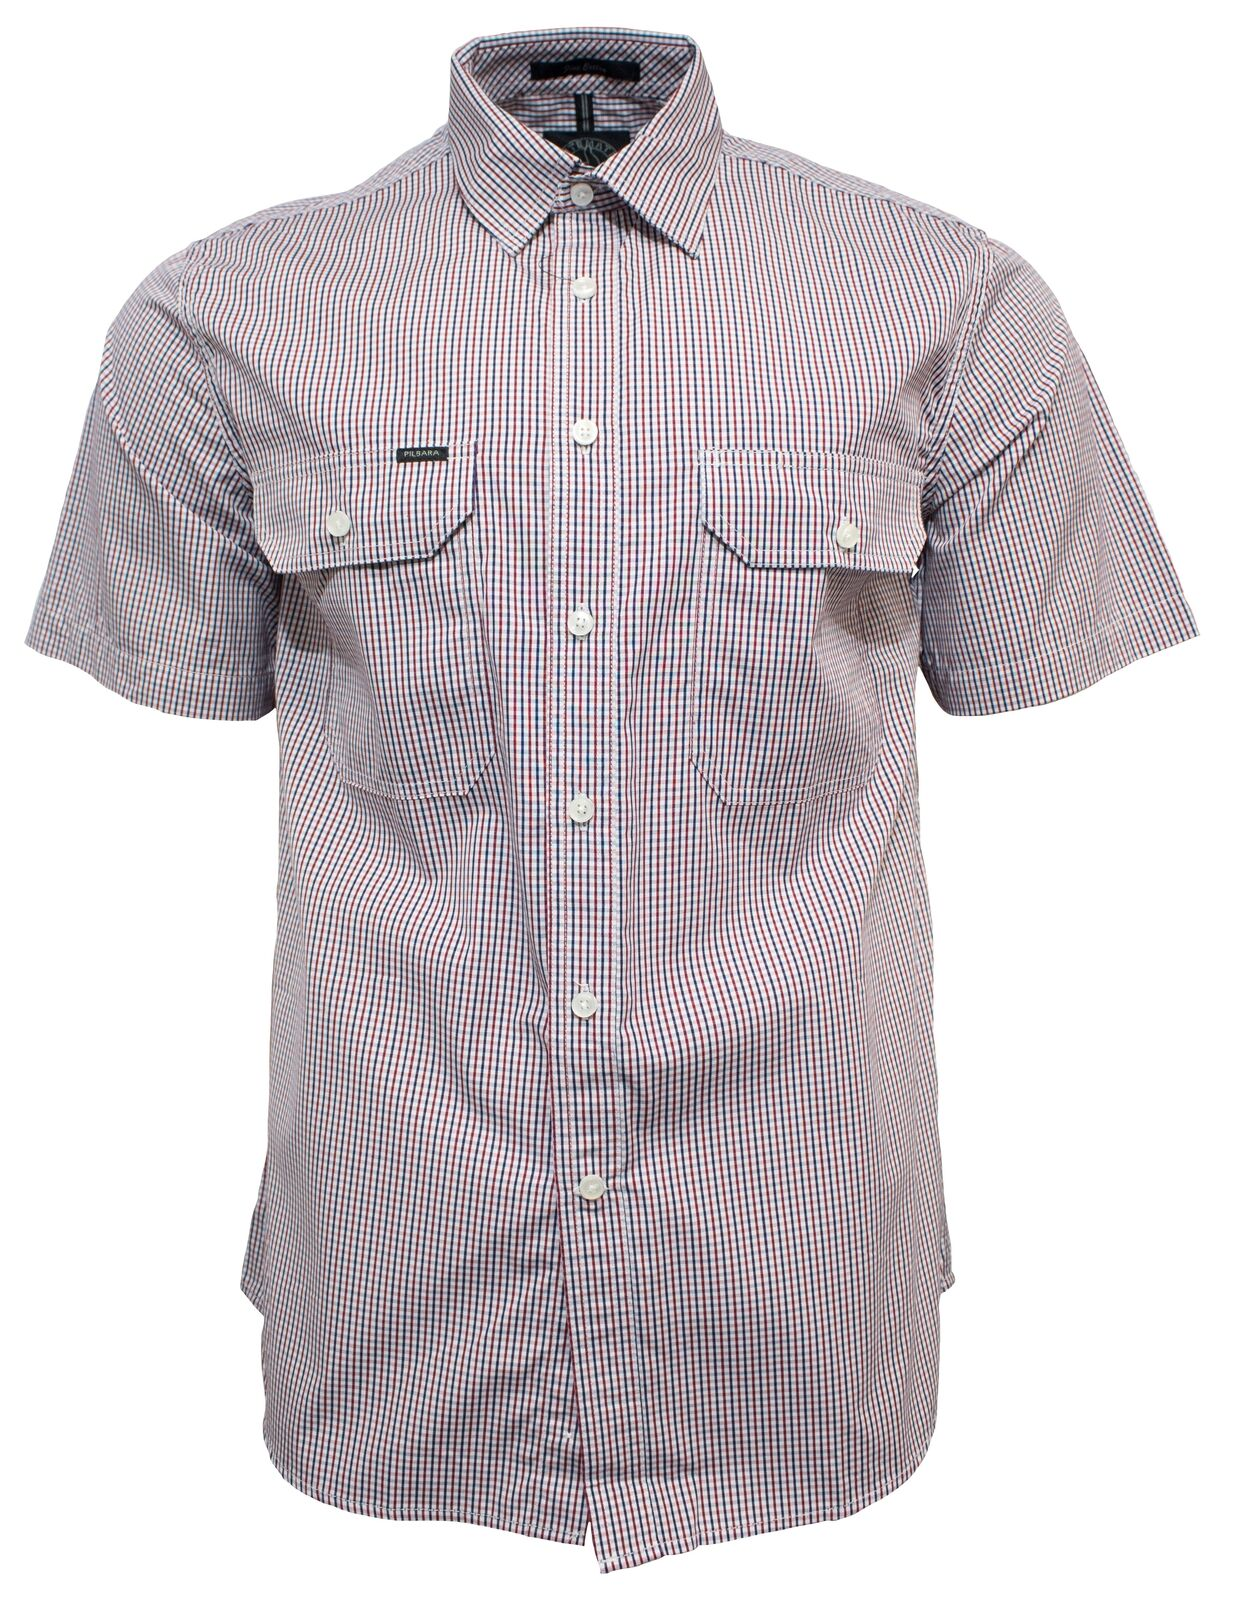 Ritemate Pilbara Short Sleeve Check Shirt (4619330355337)